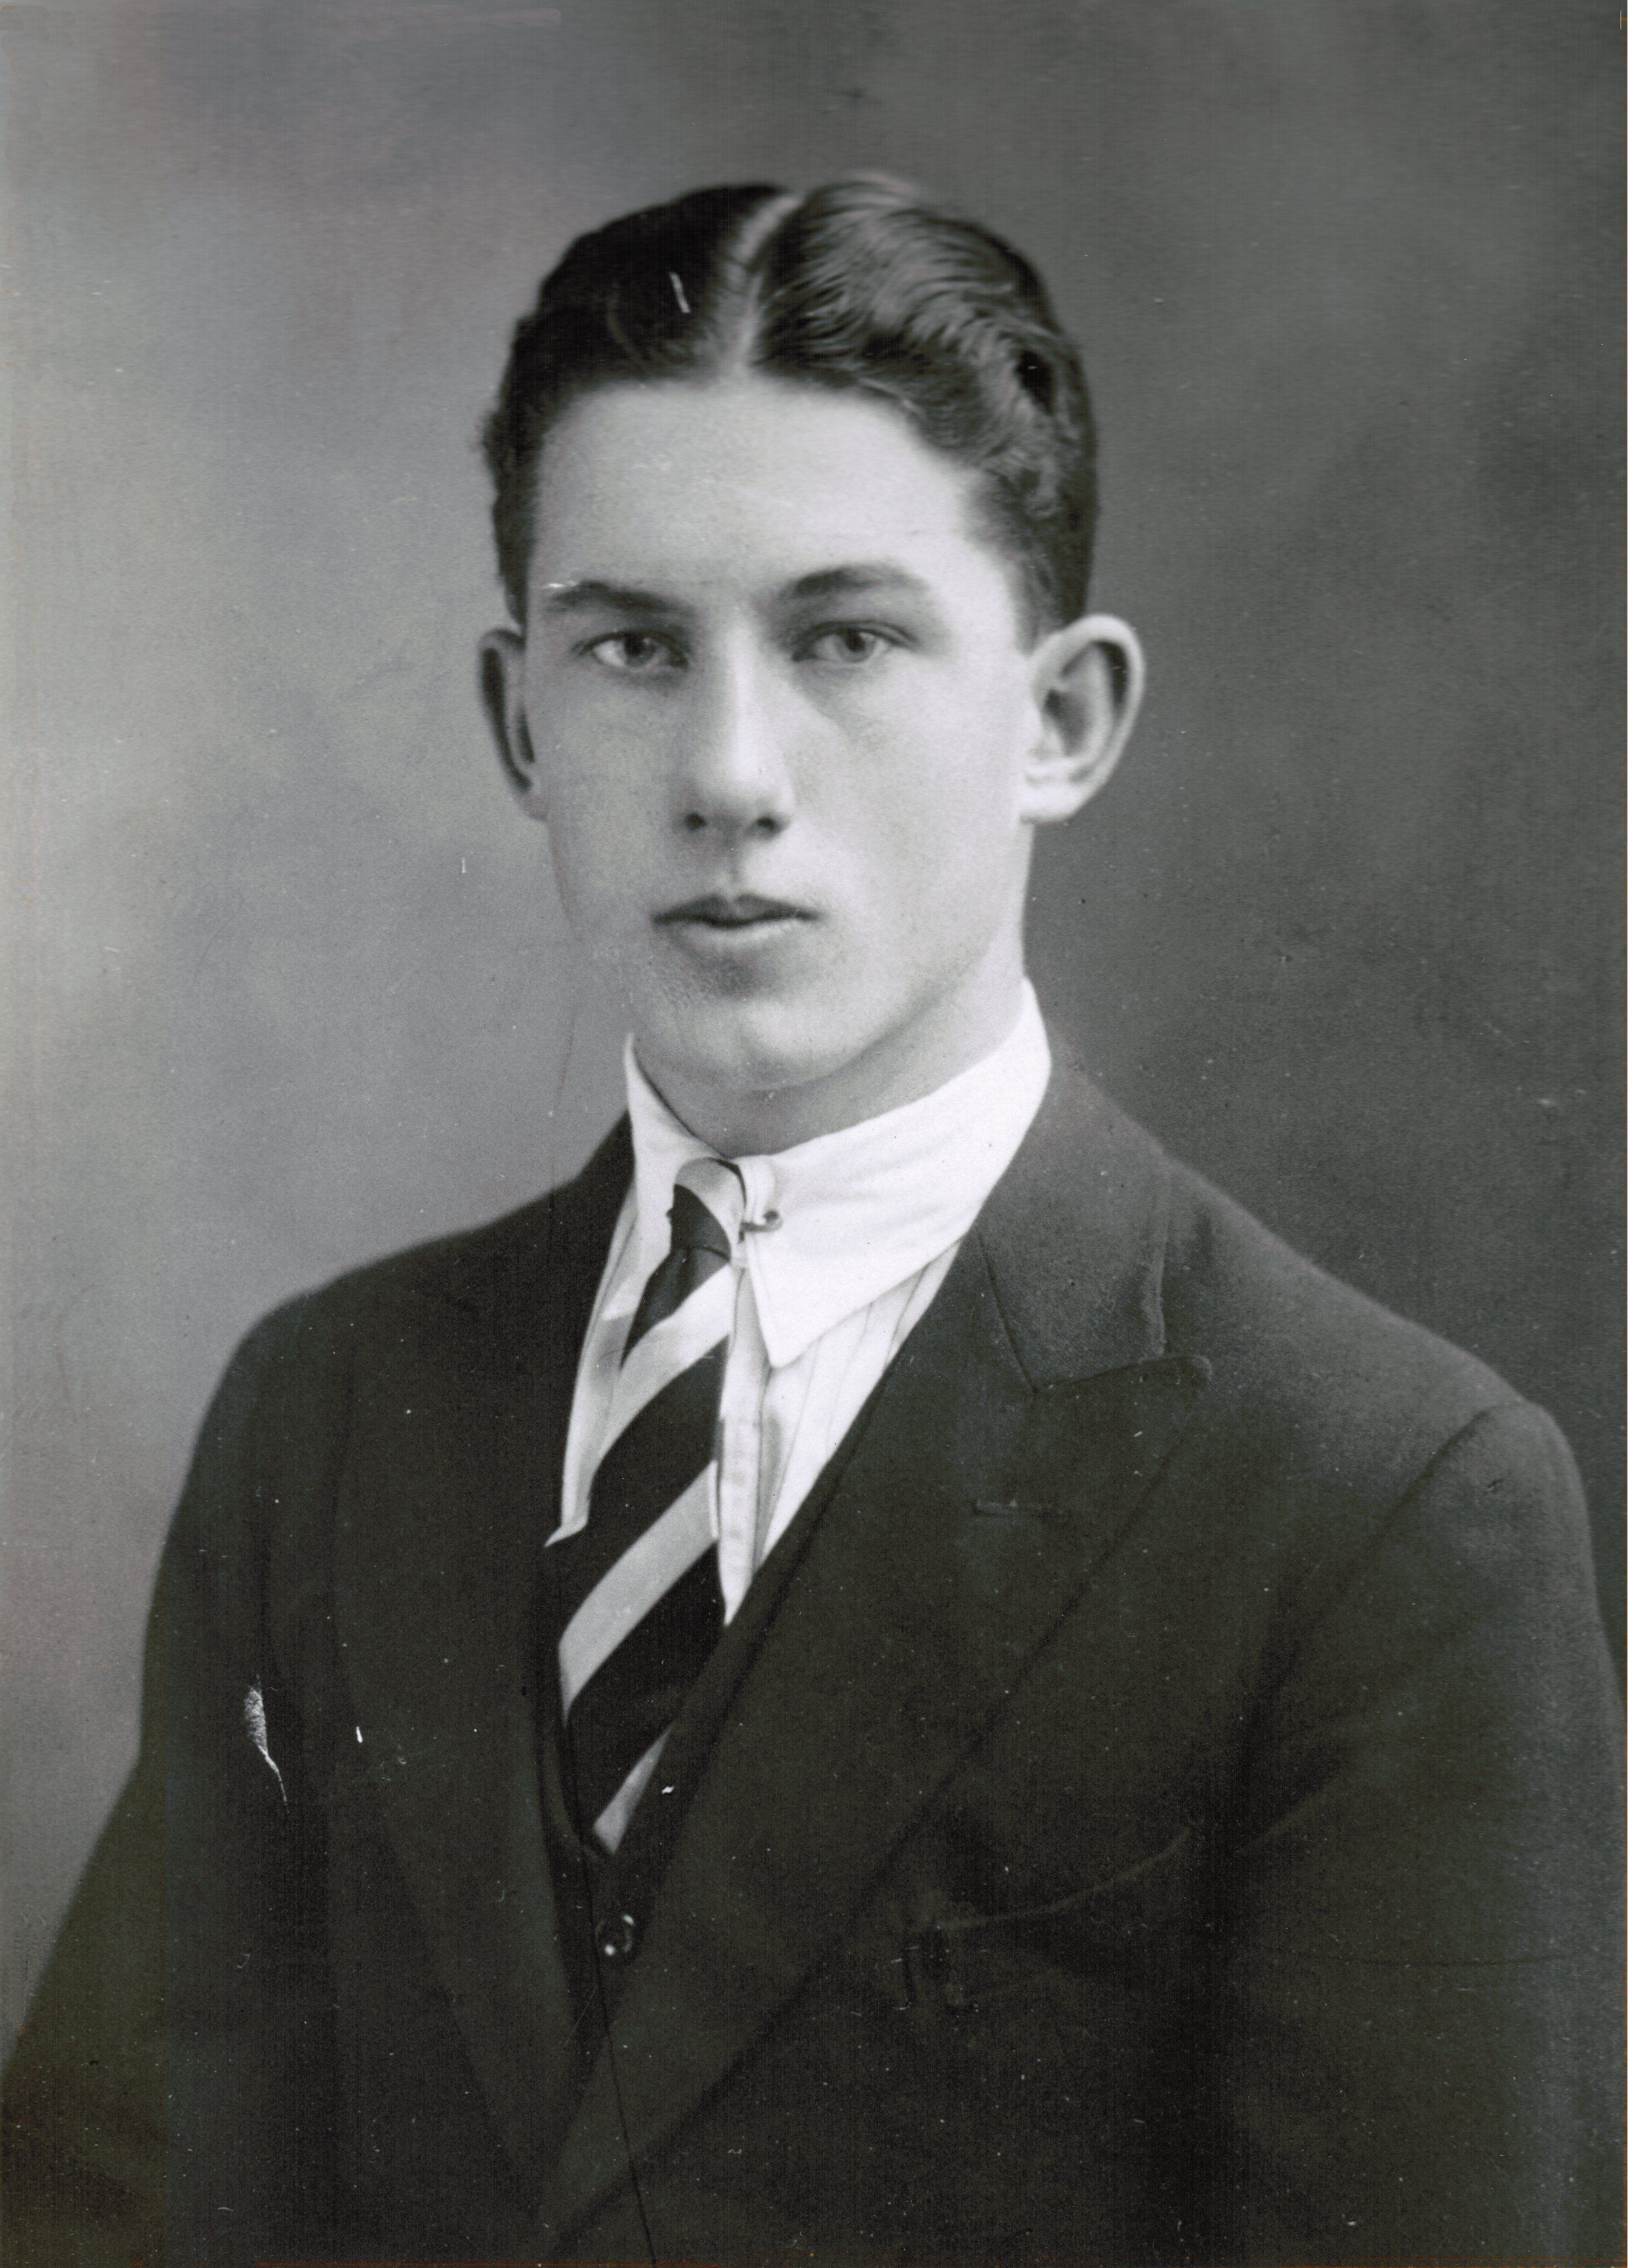 A young Ronald Straker before he joined the Royal Marines in the Second World War He returned to manage what was left of the stationery shops in London. www.wstraker.co.uk